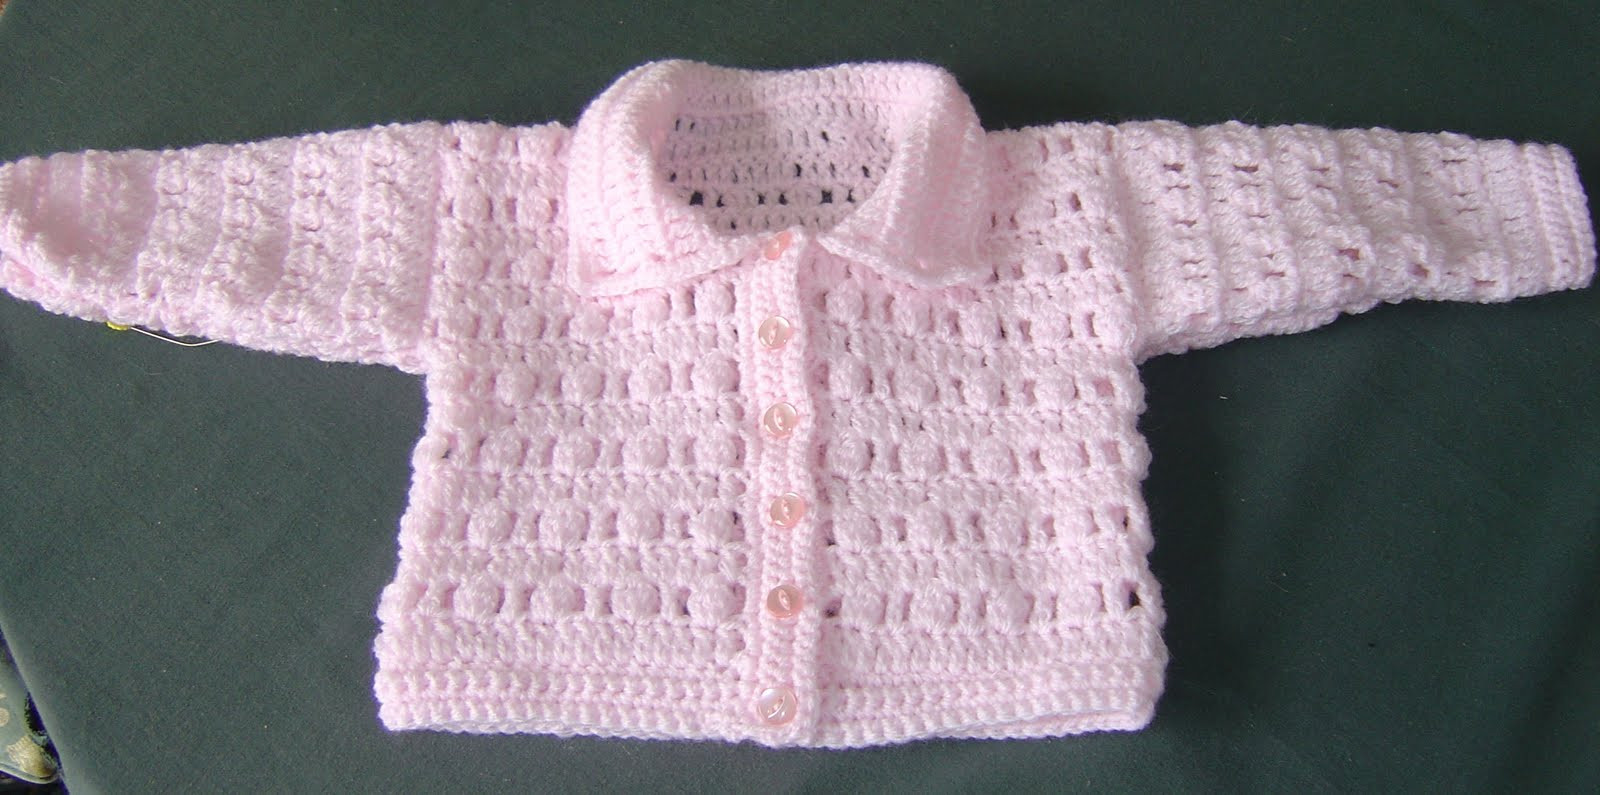 Crochet Baby Cardigan Pattern Elegant Enthusiastic Crochetoholic Pink Crochet Baby Jacket Of Luxury 44 Pictures Crochet Baby Cardigan Pattern